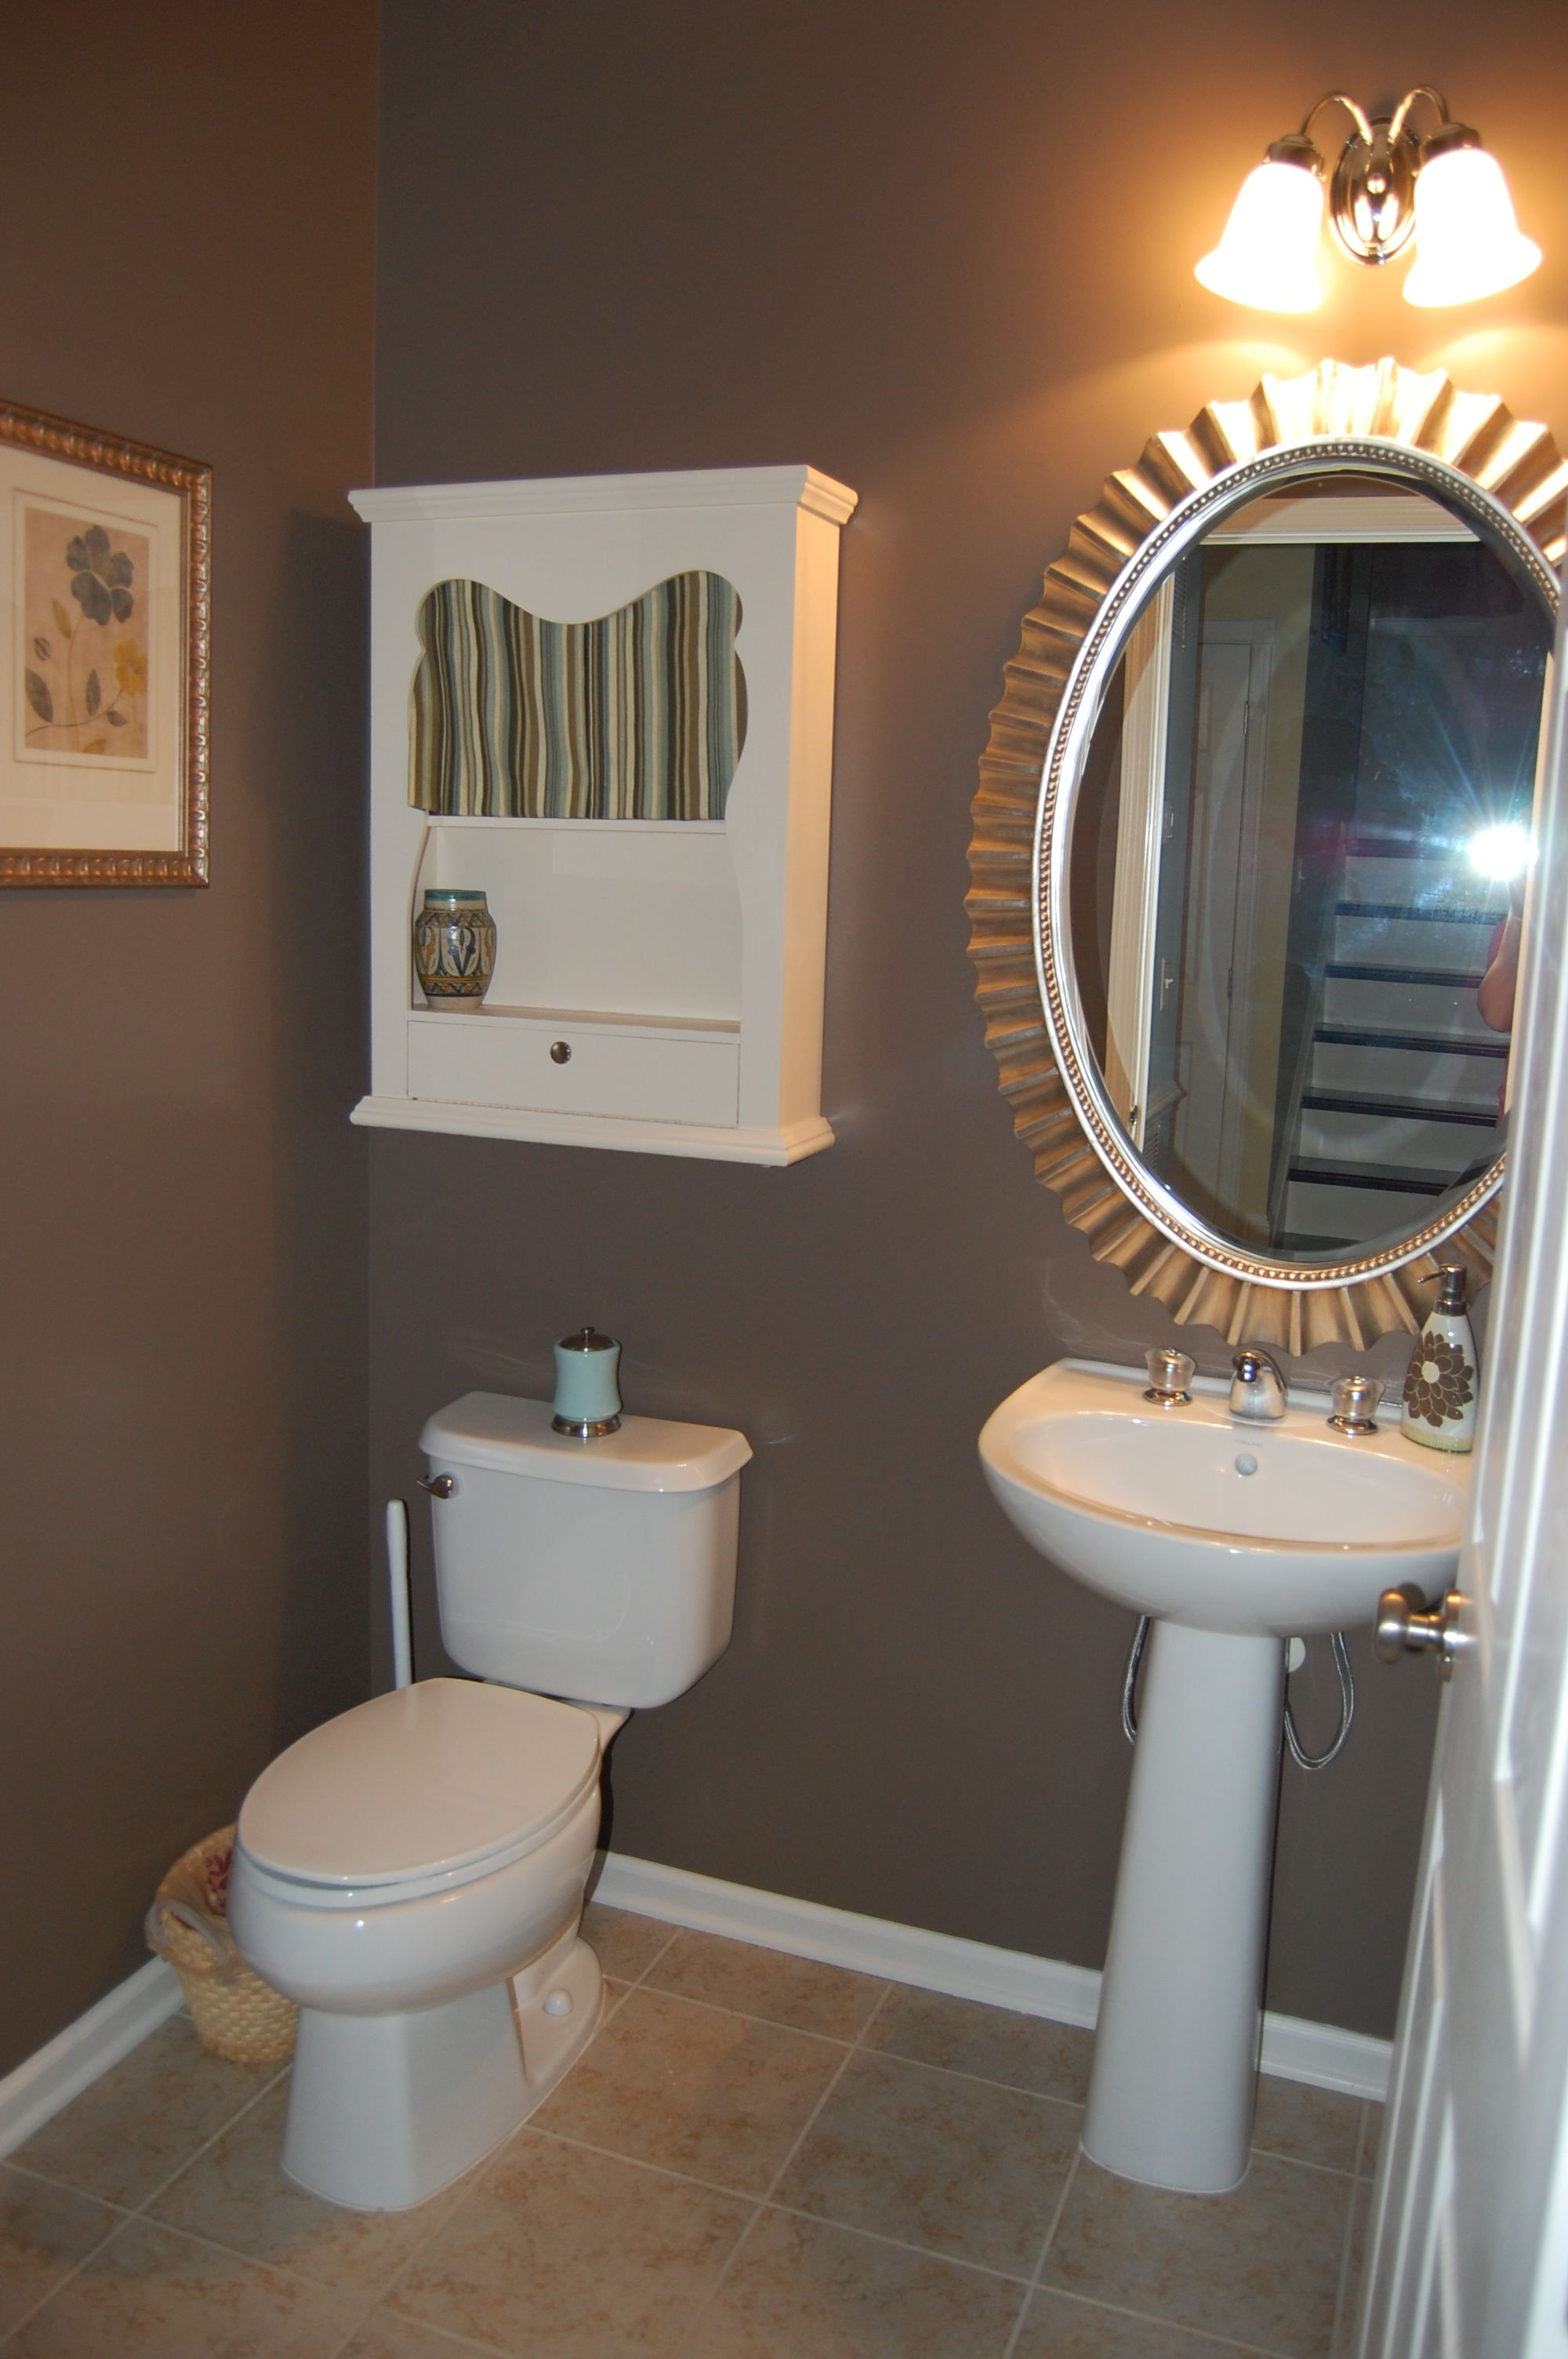 Powder room bathroom color projects pinterest like for Bathroom remodel color schemes